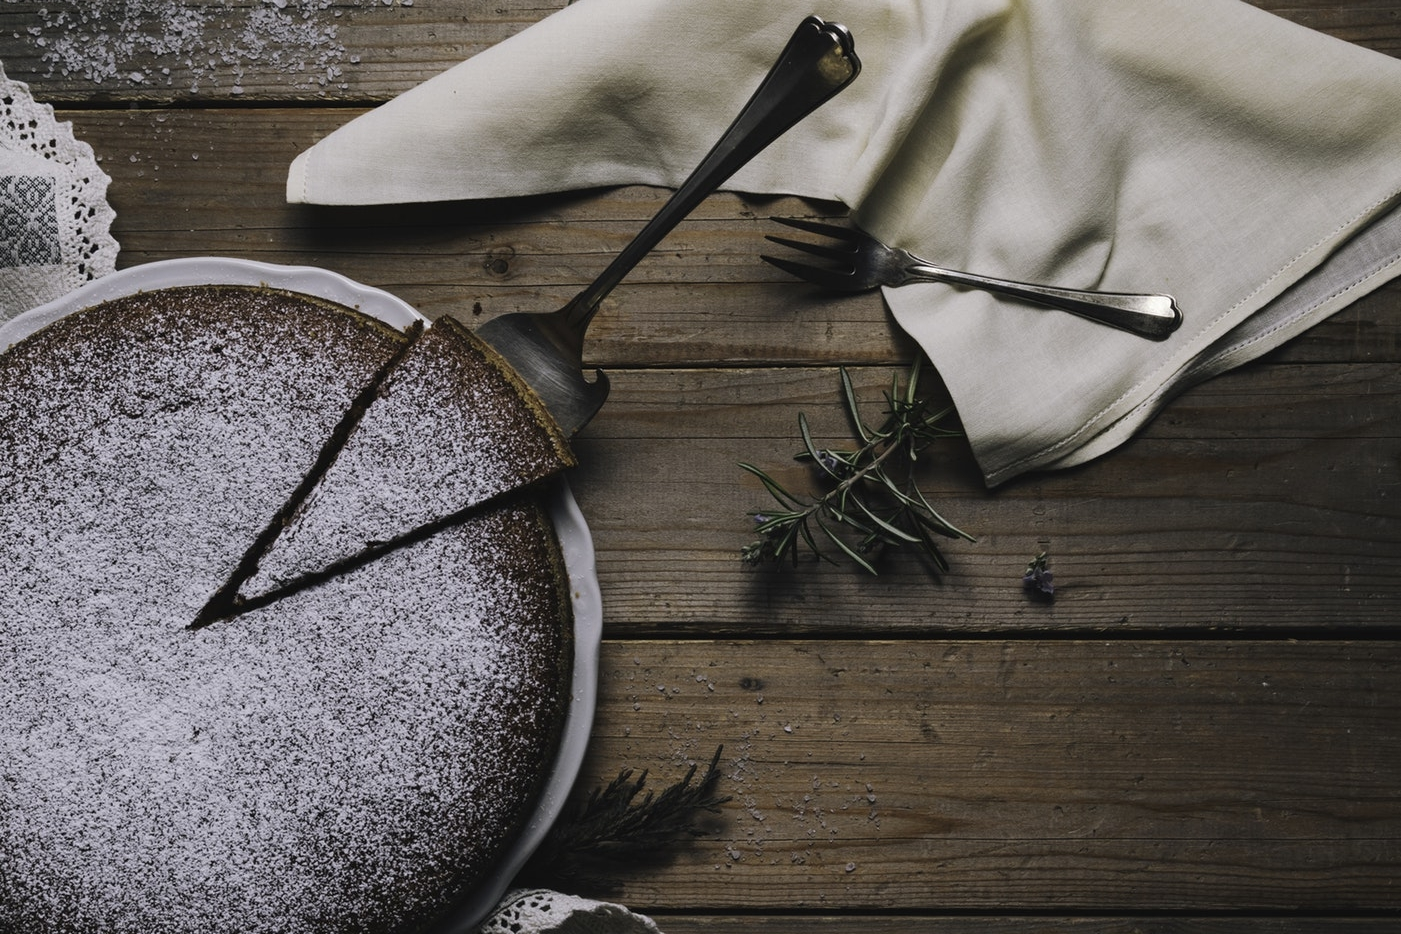 This olive oil cake, featured in the menu below, is rich in moisture and has a beautiful, crackling crust. Though pulling both off might sound daunting, I promise this recipe is just as simple to execute as that cake I made all those years ago.